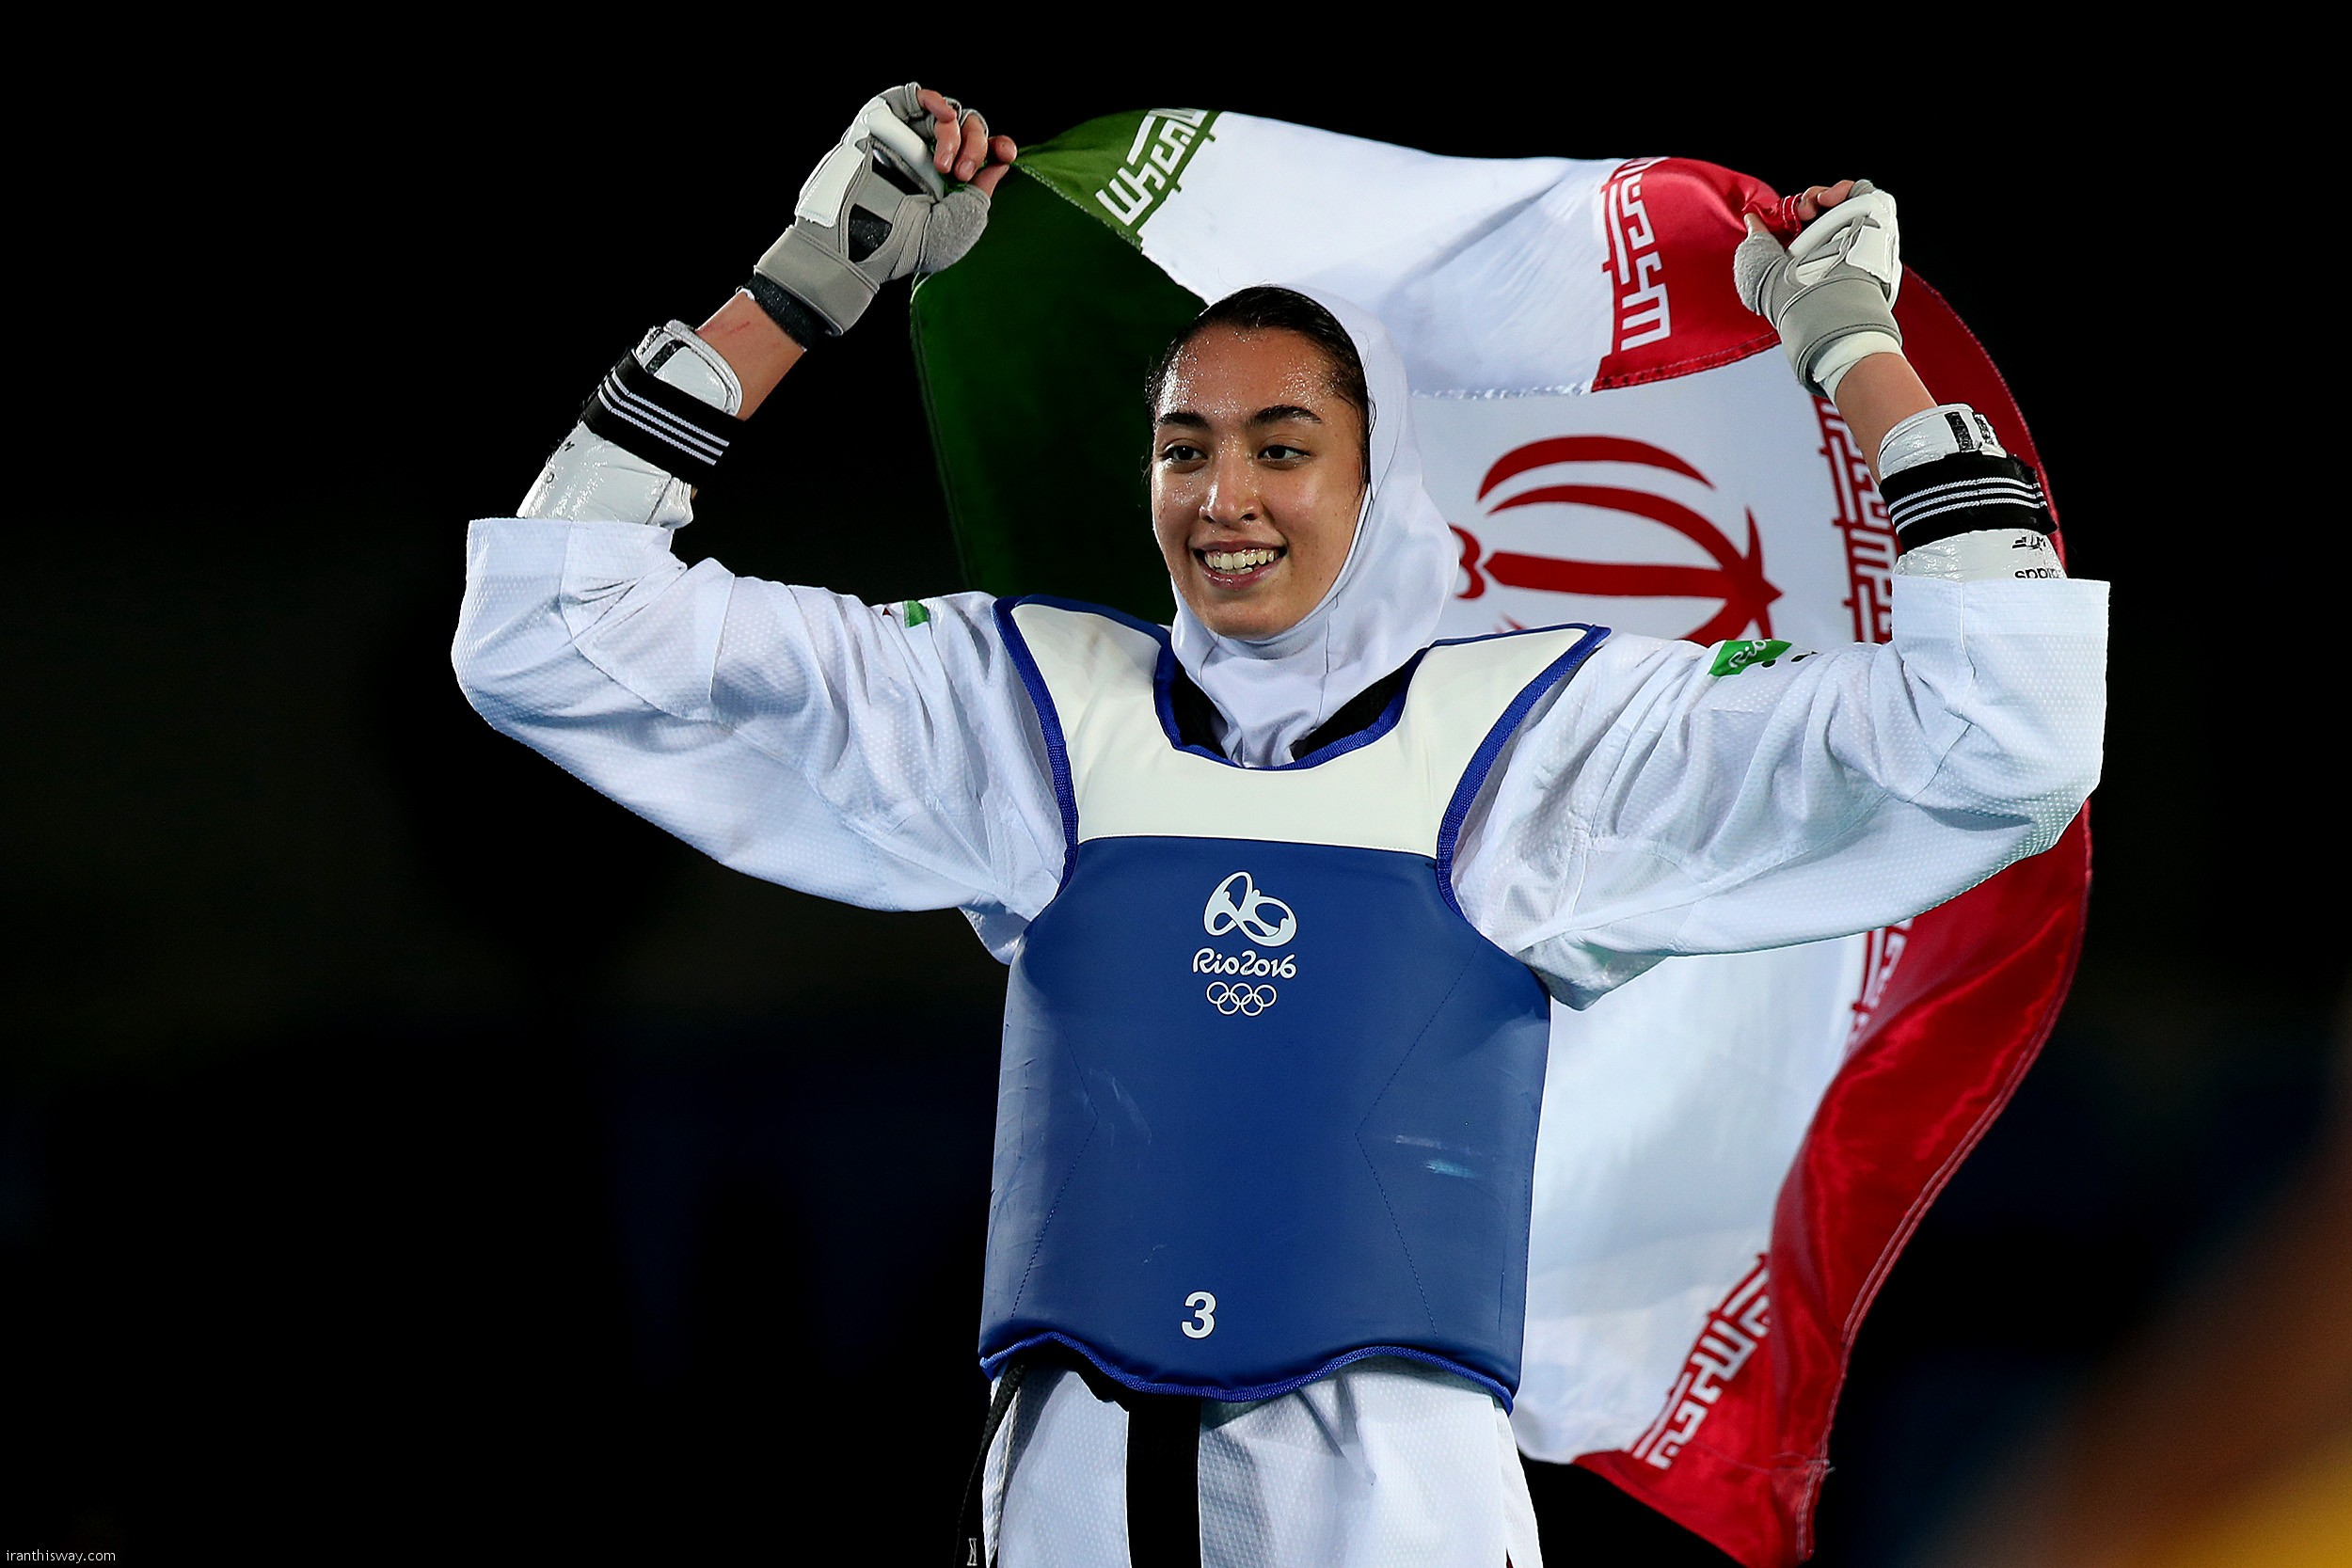 Iran's Olympic squad finishes with 8 medals